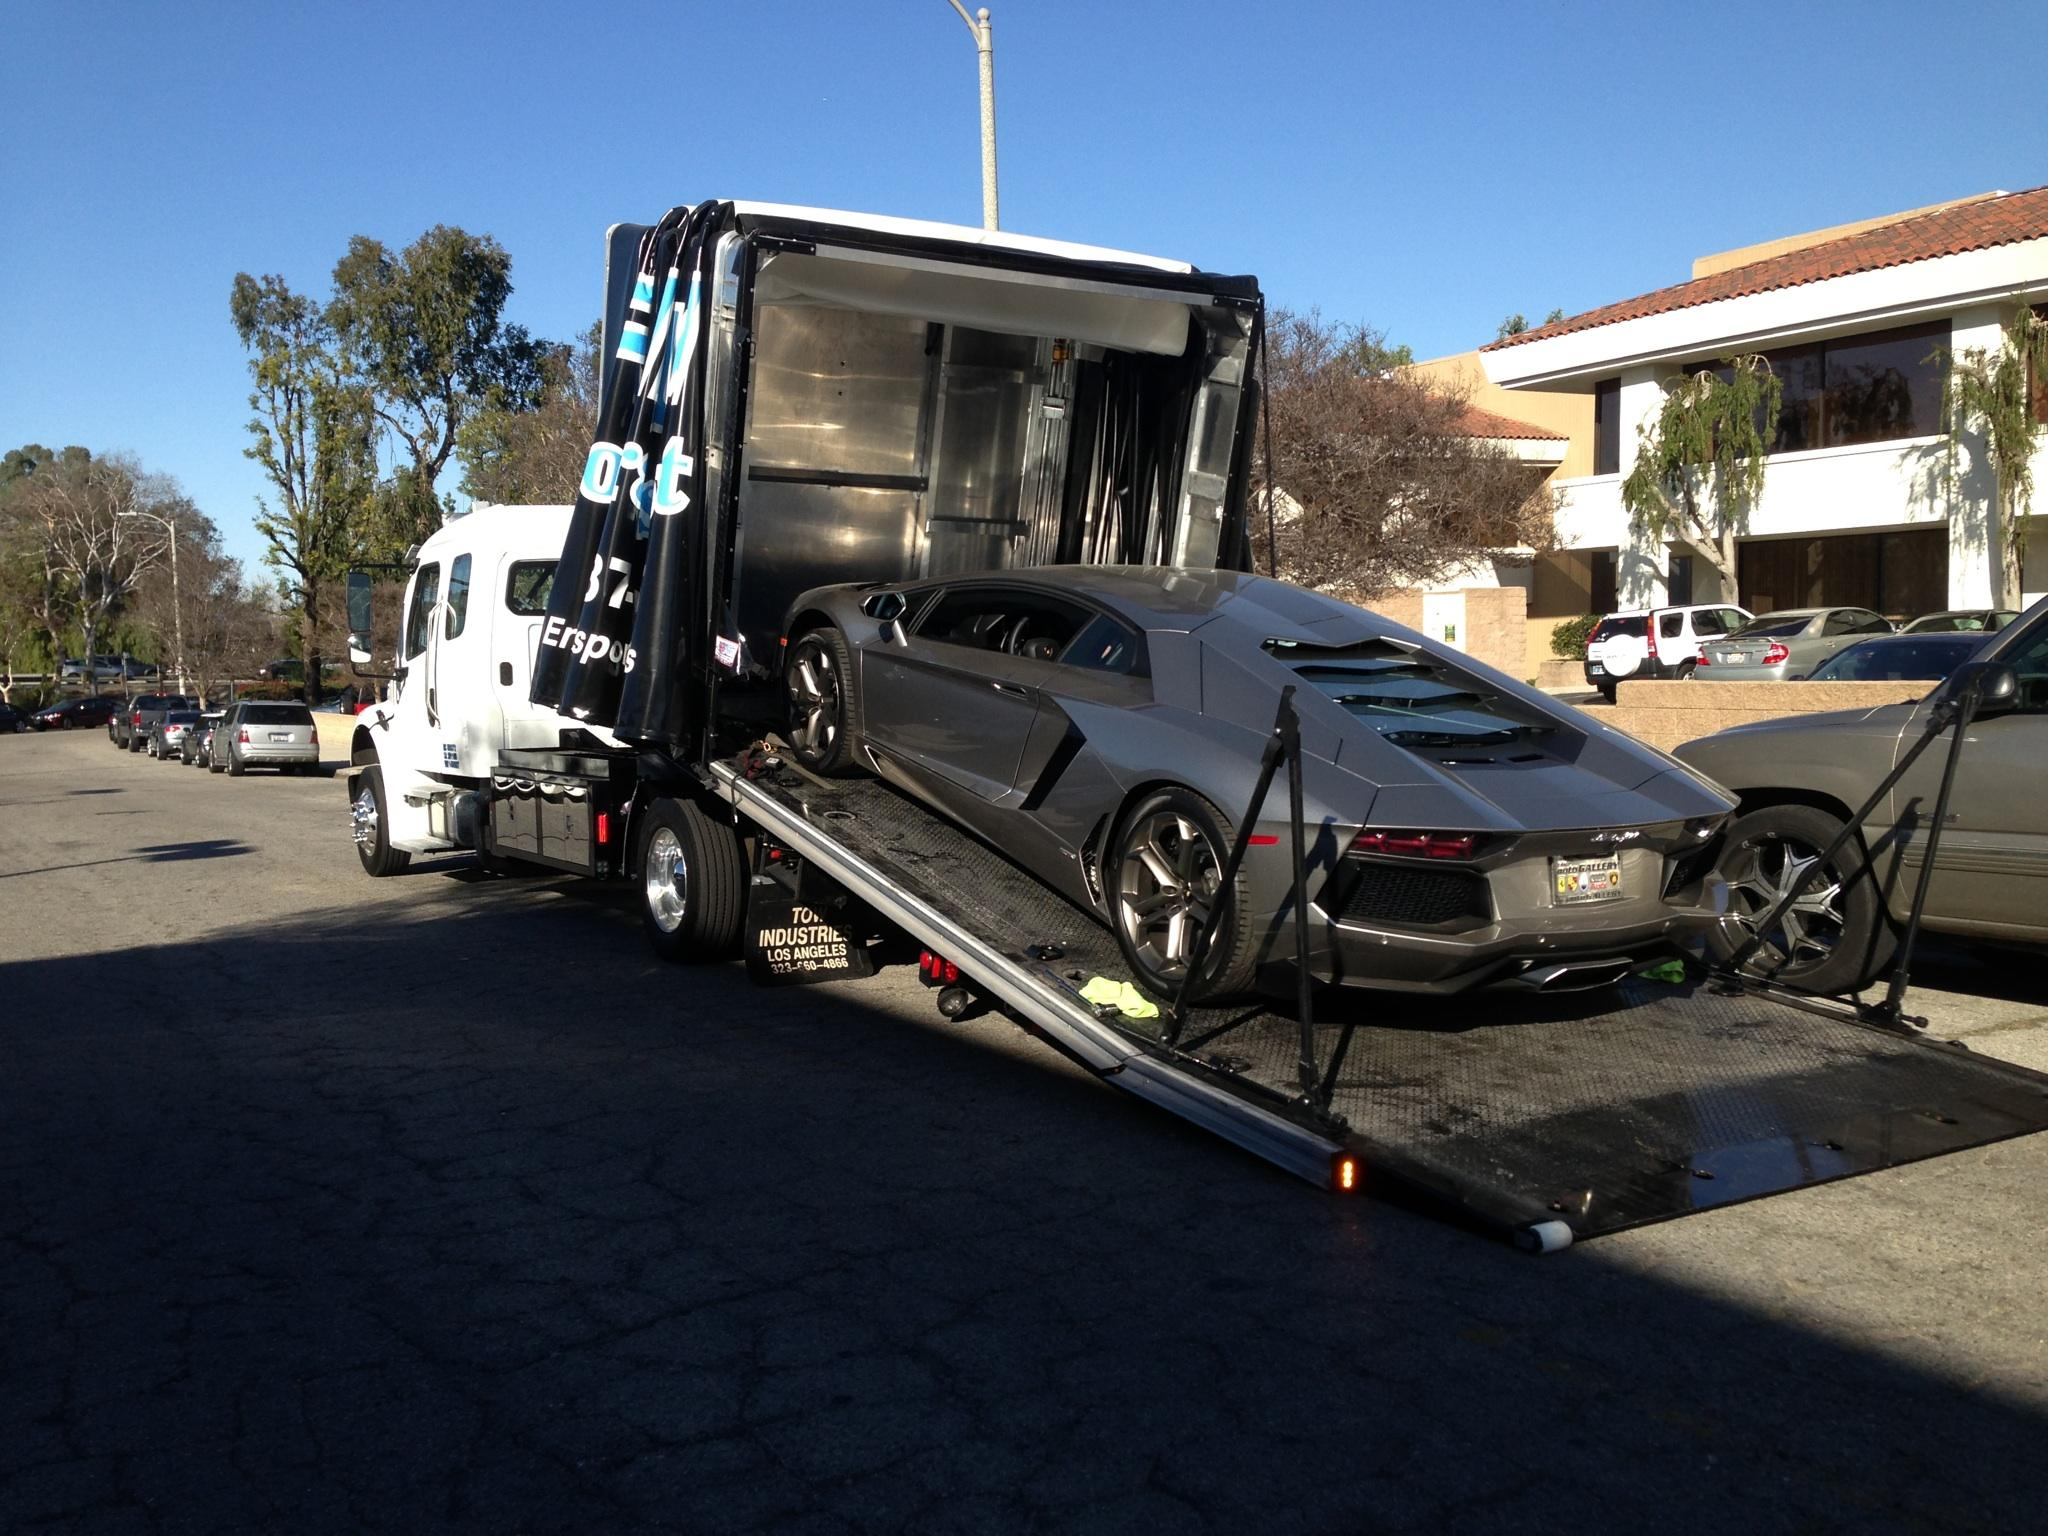 lond distance sport car towing